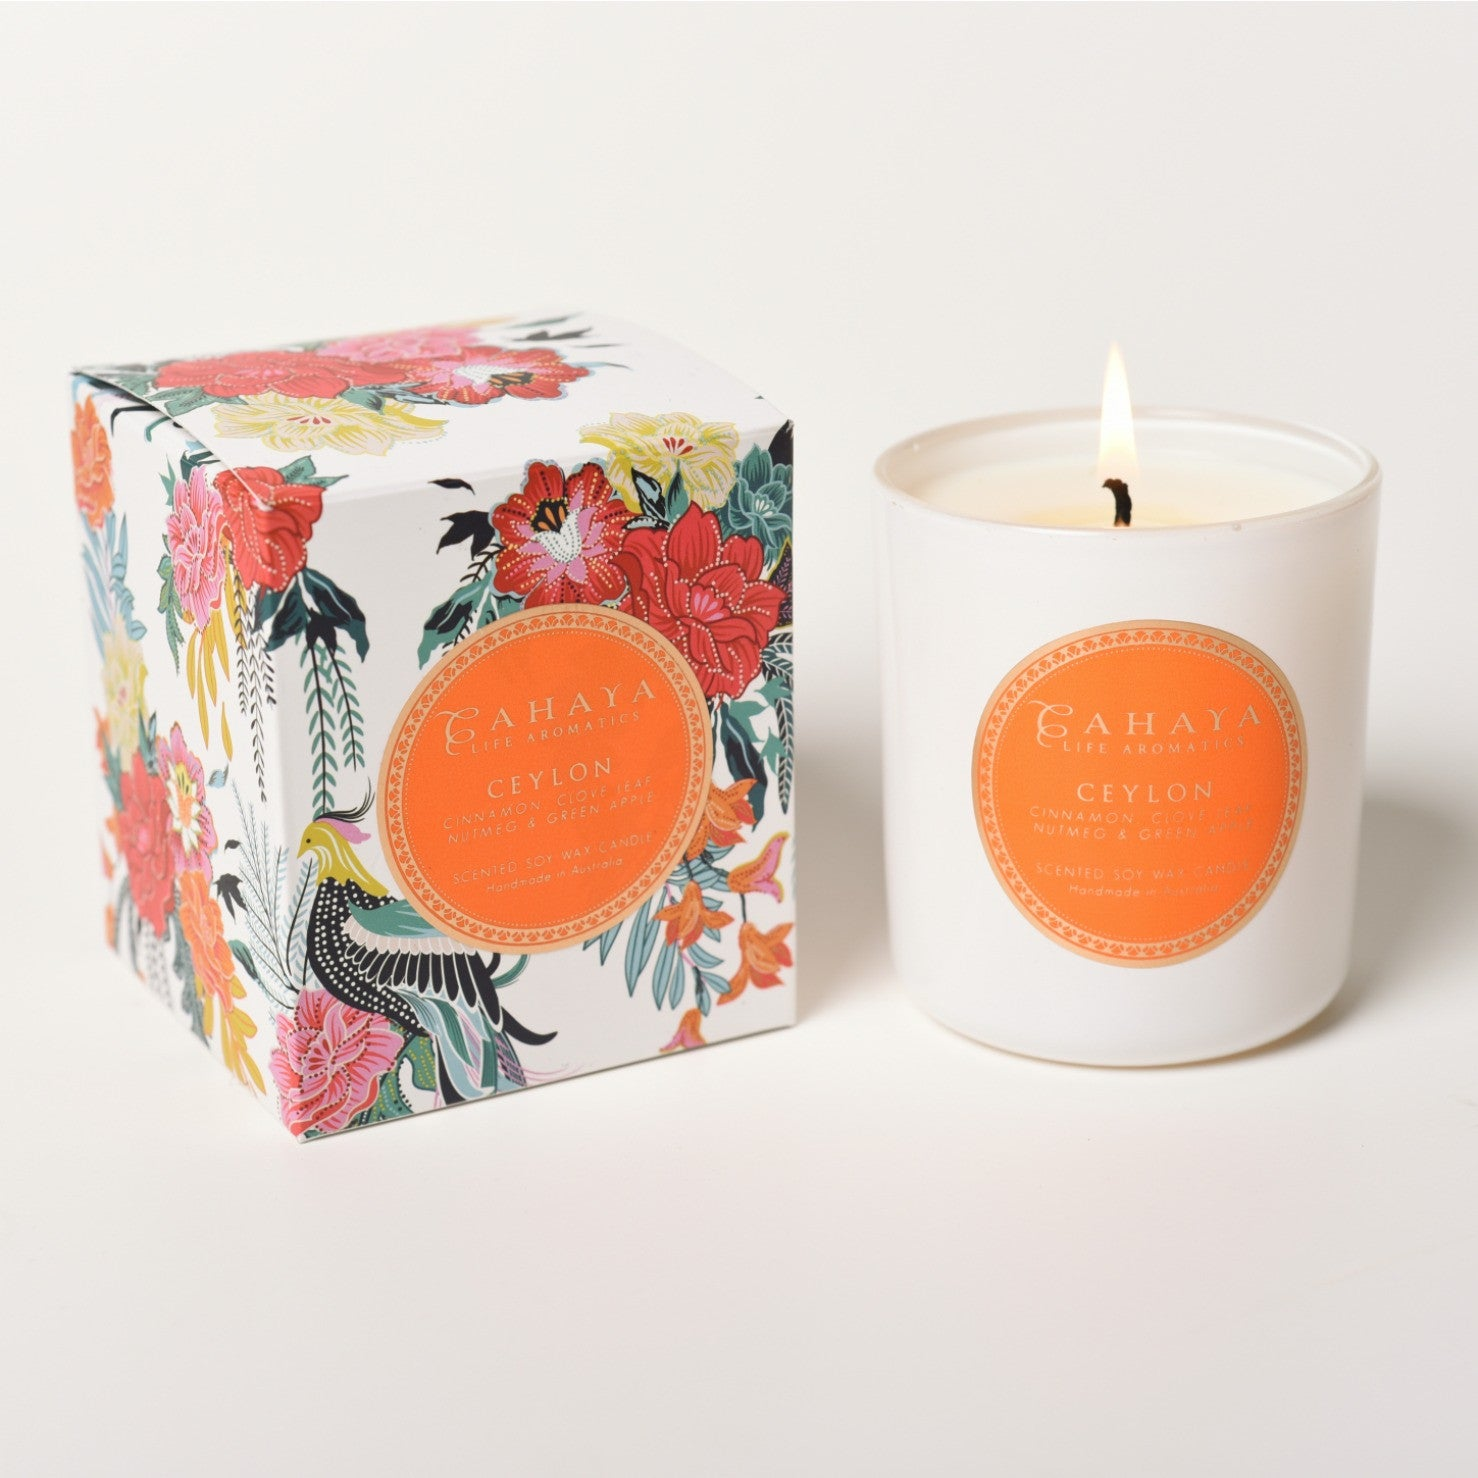 Ceylon Tranquility Candle